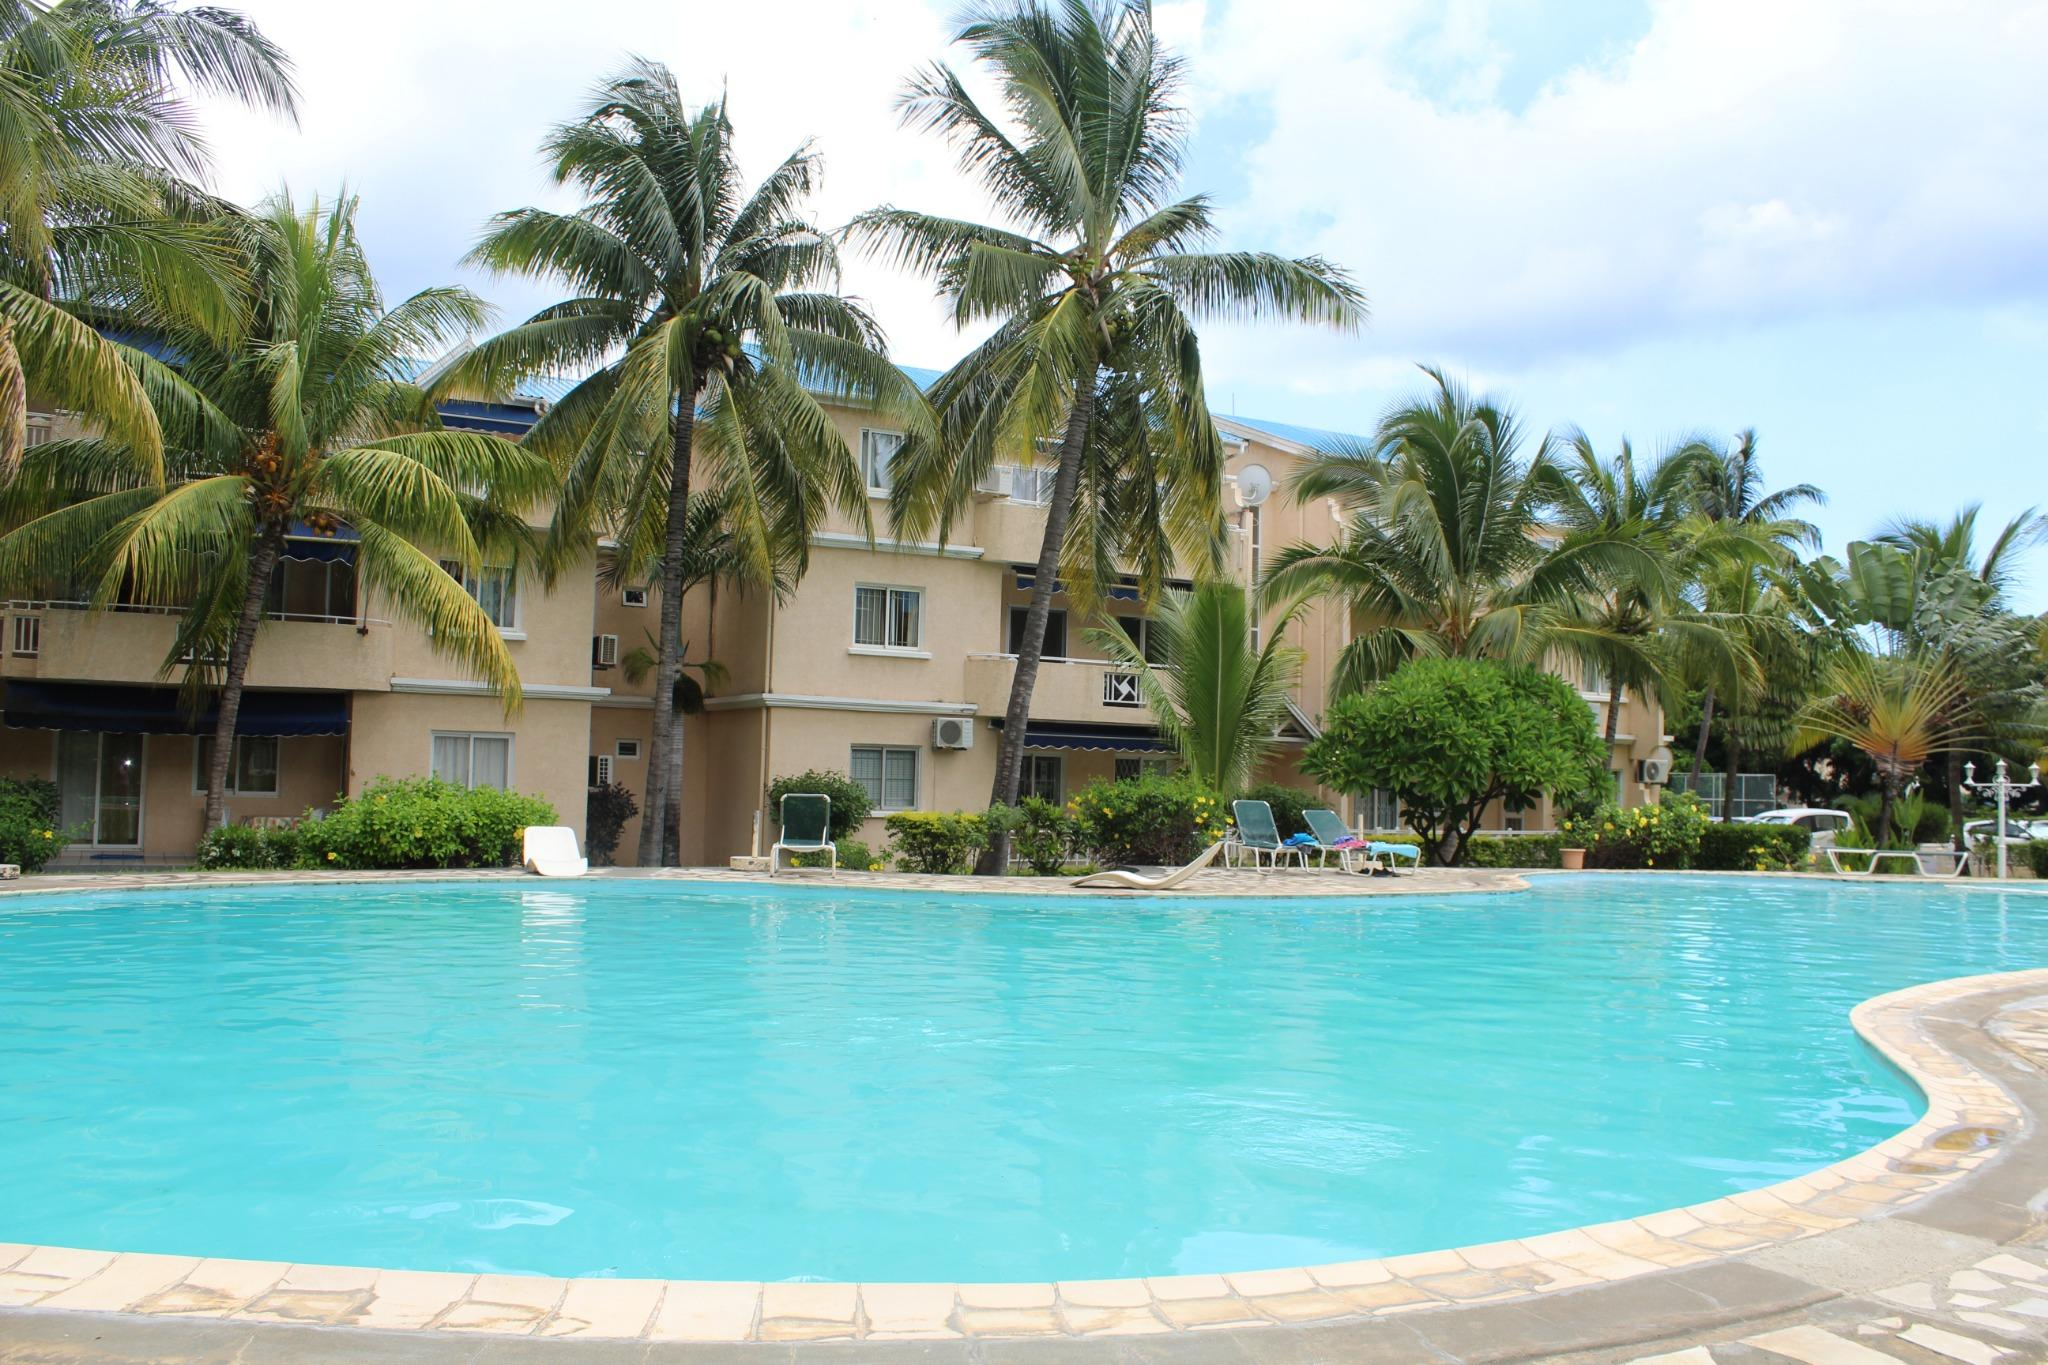 To rent – Beautiful furnished and equipped apartment of 125 m2 on the 1st floor of a 24/7 secured residence in Flic en Flac